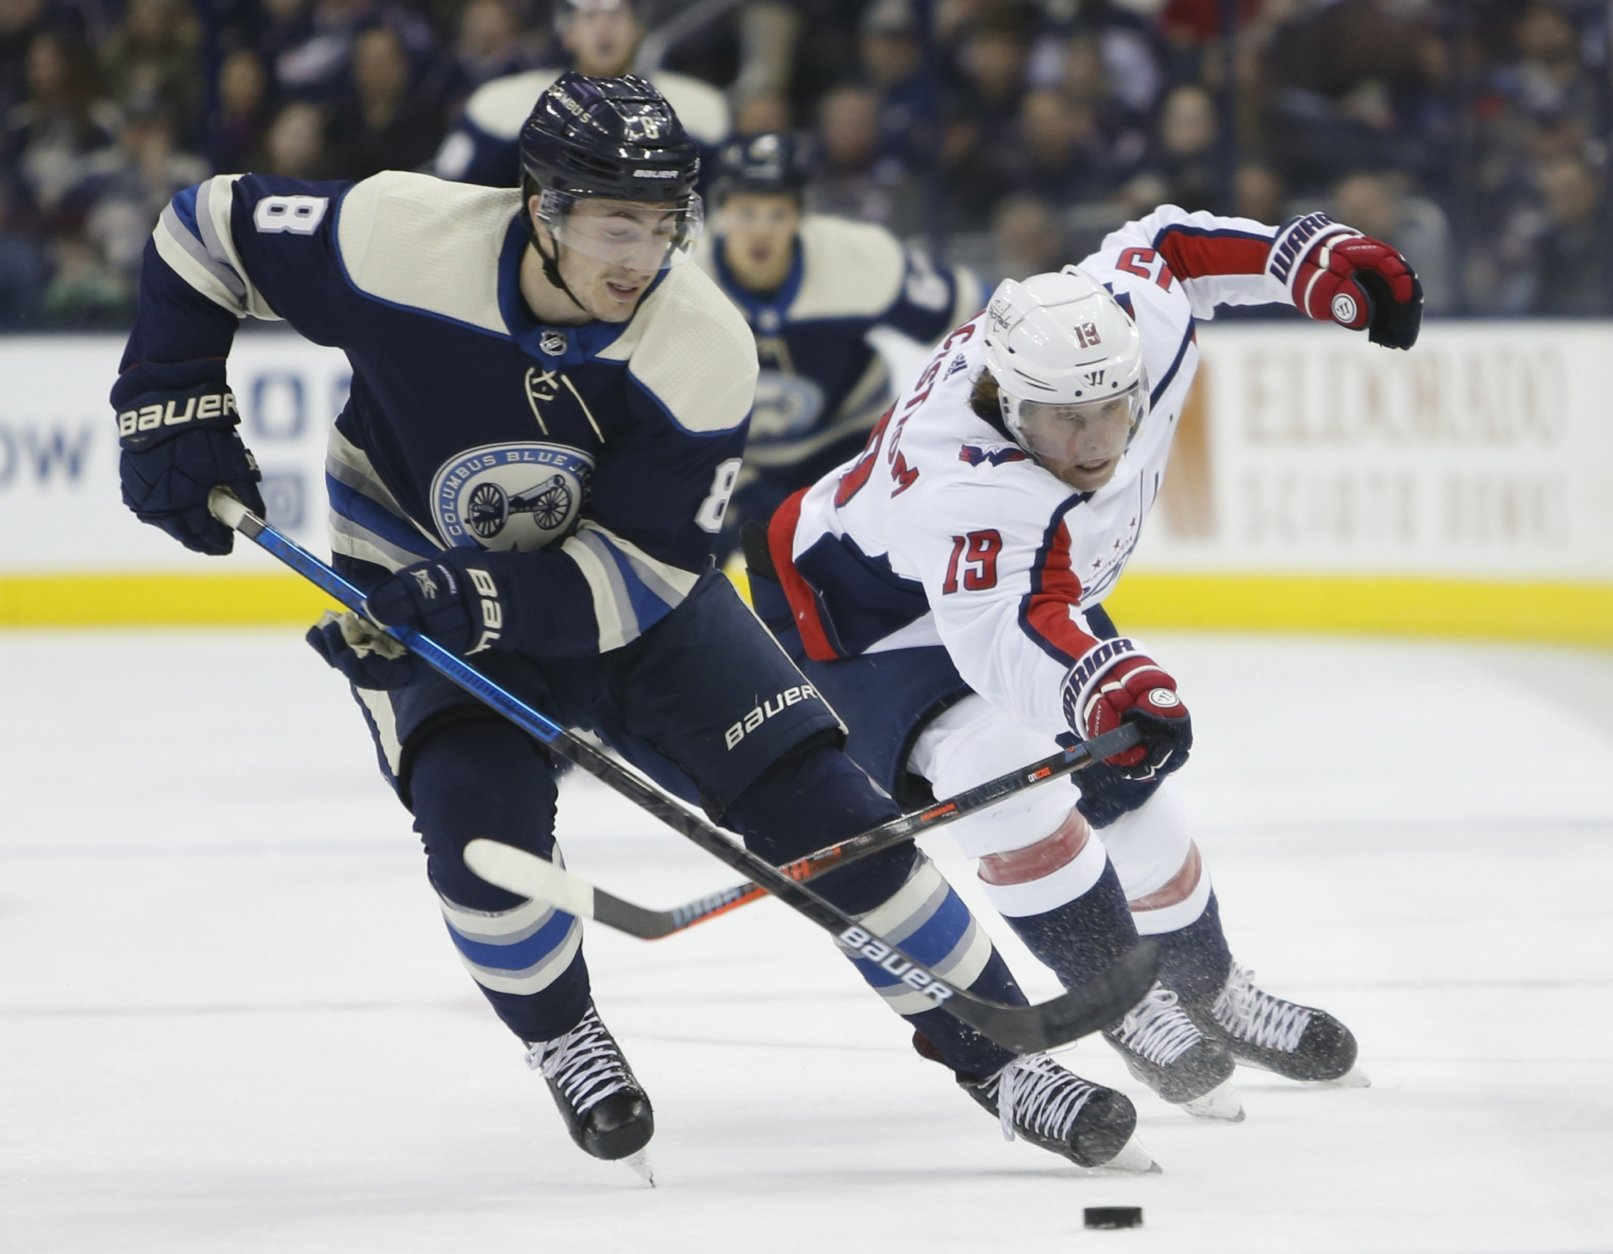 Columbus Blue Jackets' Zach Werenski, left, tries to control the puck as Washington Capitals' Nicklas Backstrom, of Sweden, defends during the first period of an NHL hockey game Tuesday, Feb. 12, 2019, in Columbus, Ohio. (AP Photo/Jay LaPrete)